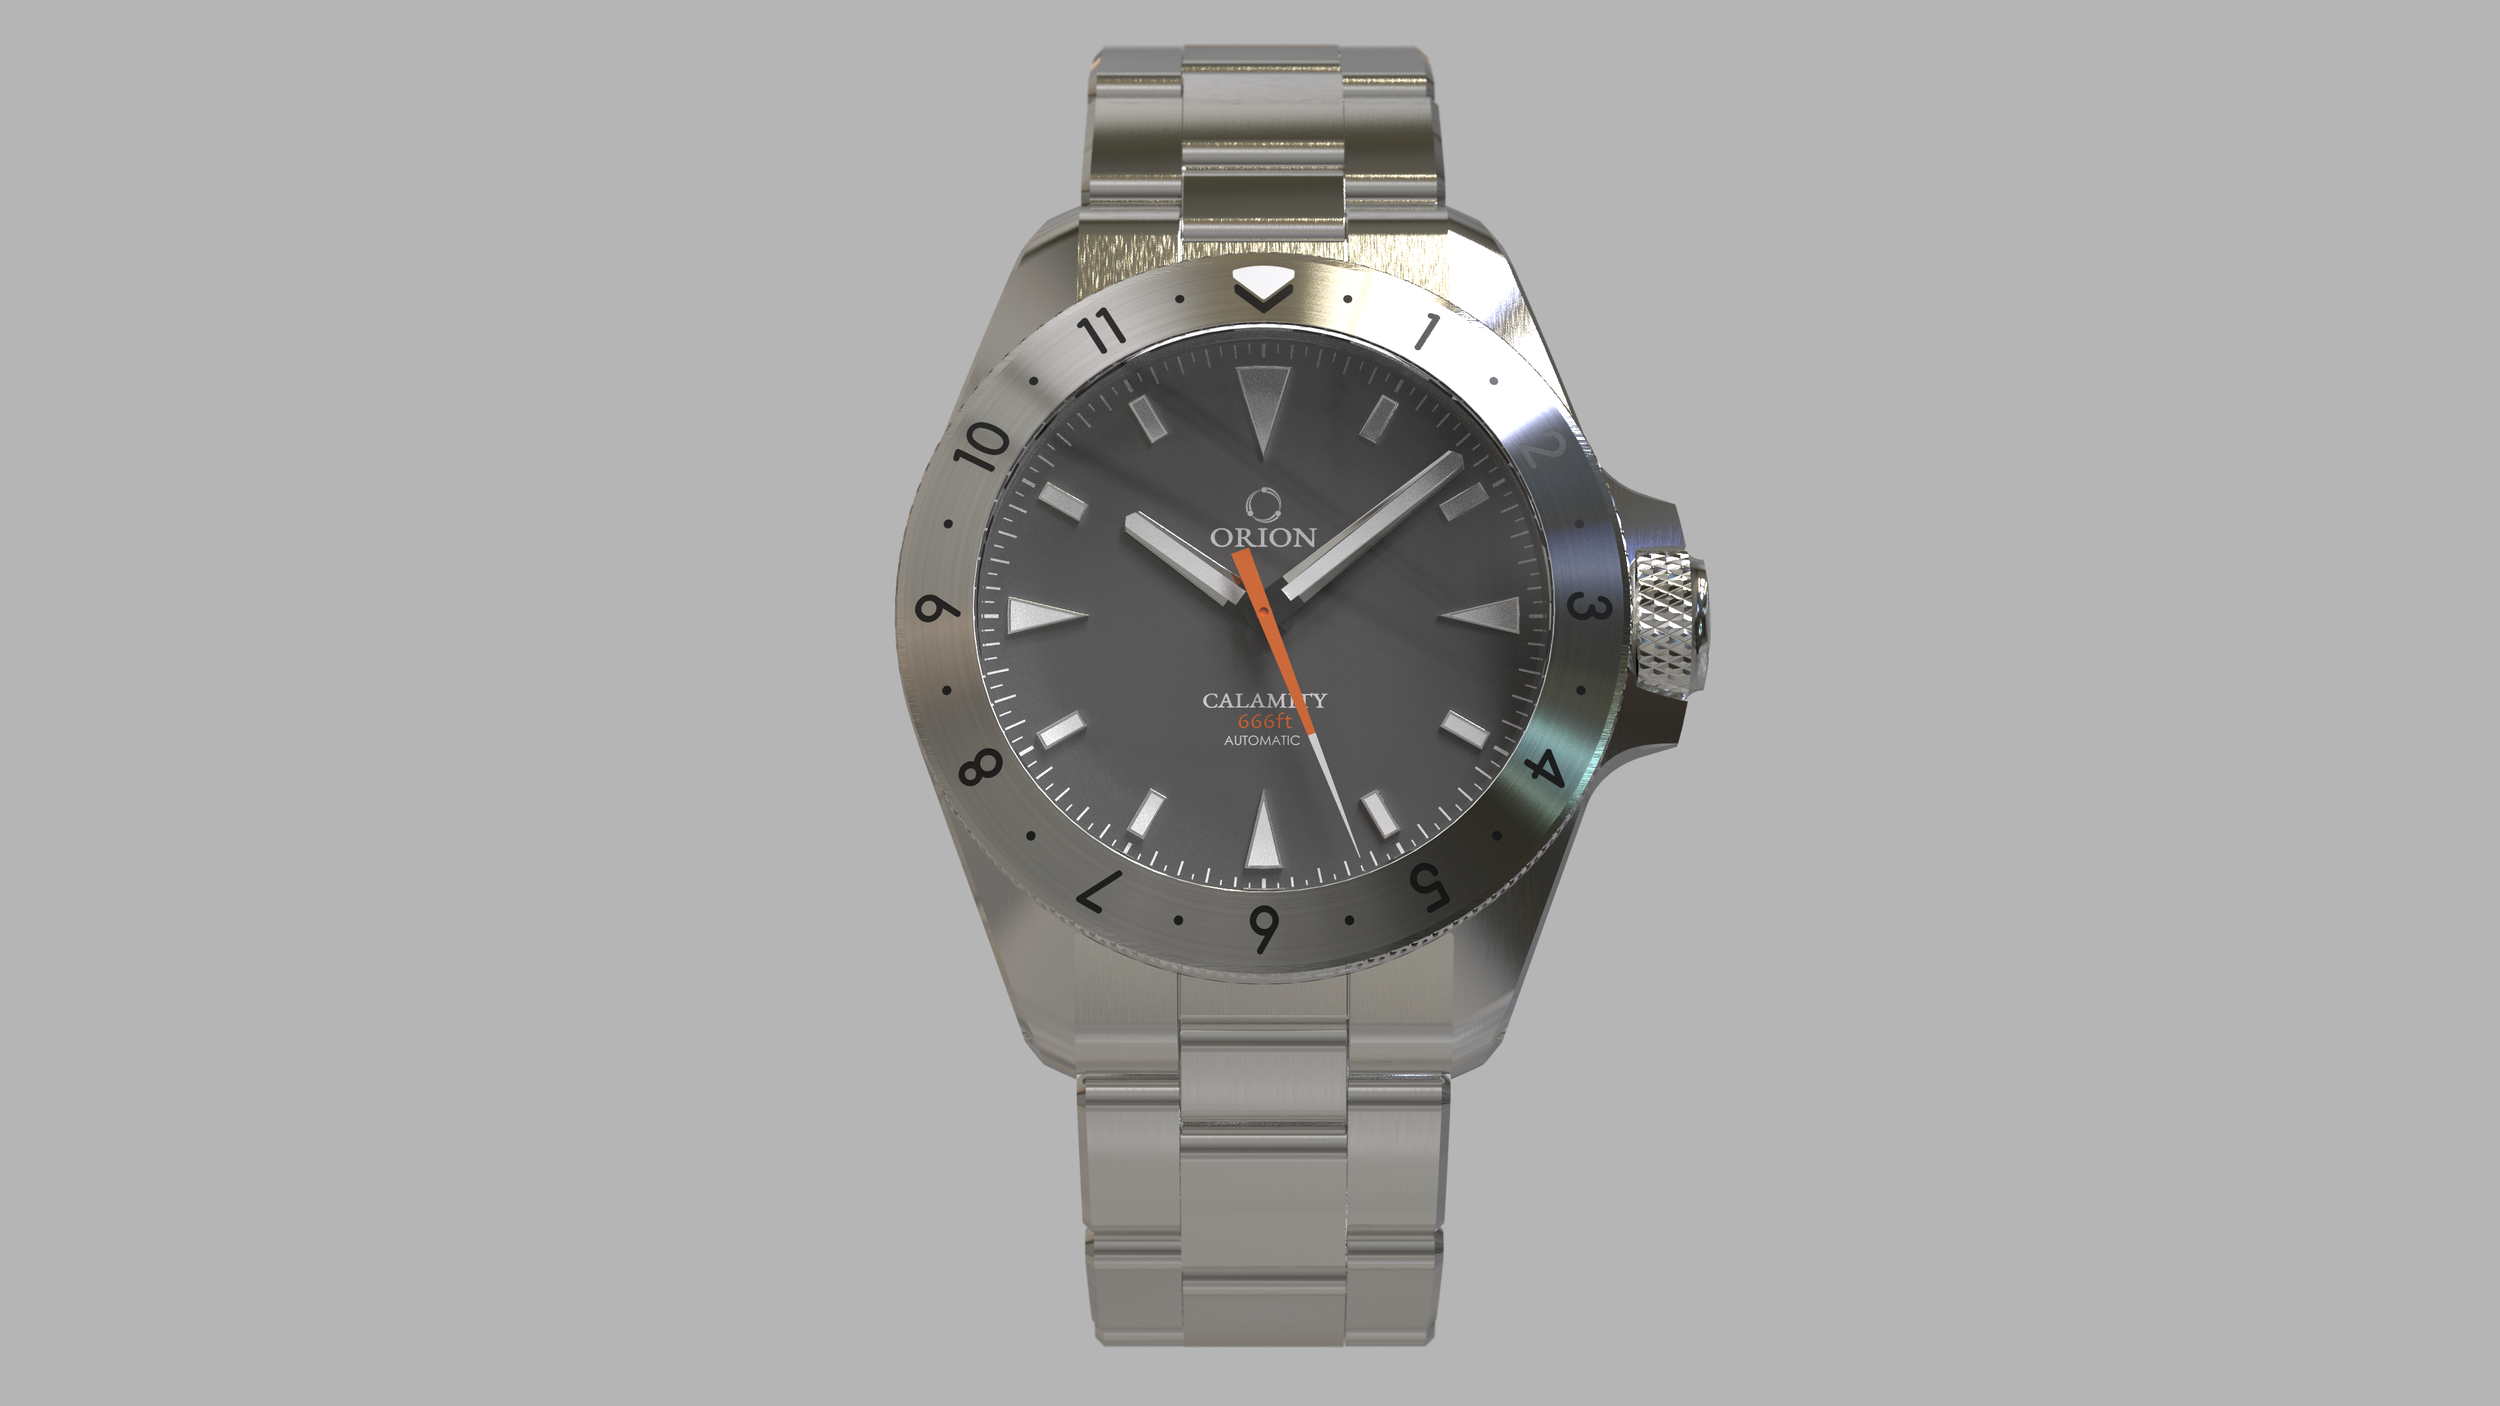 12 hour bezel concept with grey dial.